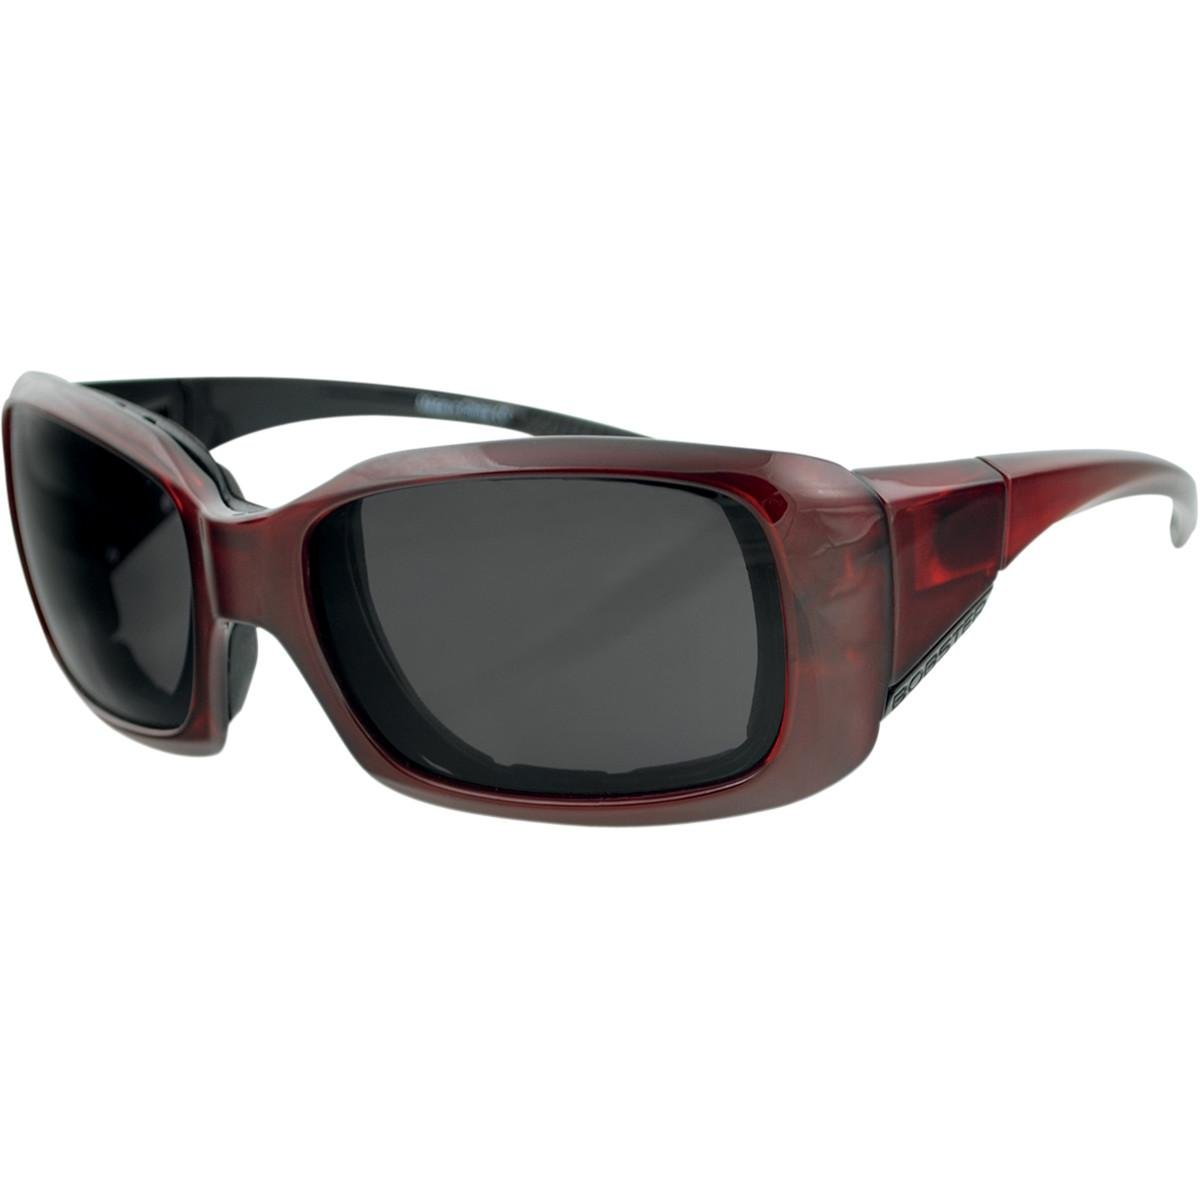 Bobster Ava Convertible Sunglasses, Red Frame, Anti-fog Smoked Lens